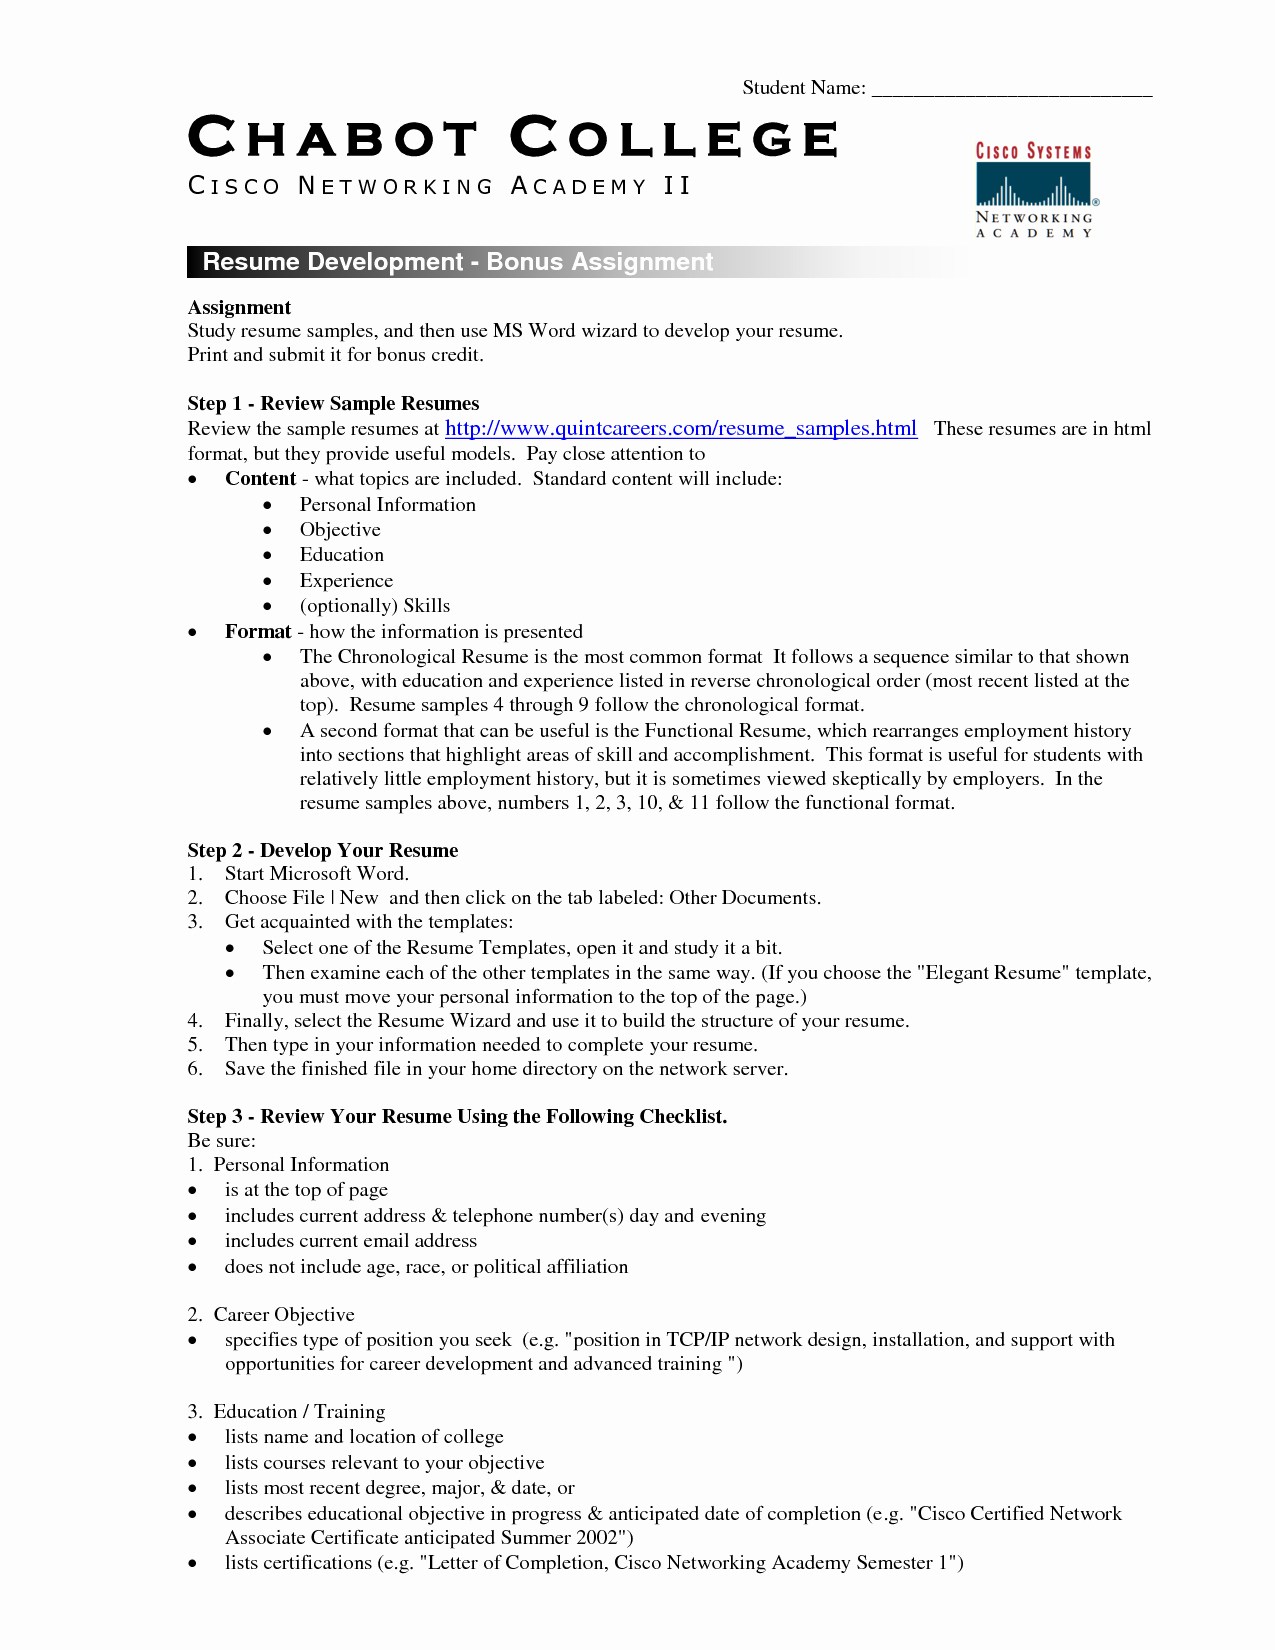 Undergraduate Resume Template Word Lovely College Student Resume Template Microsoft Word